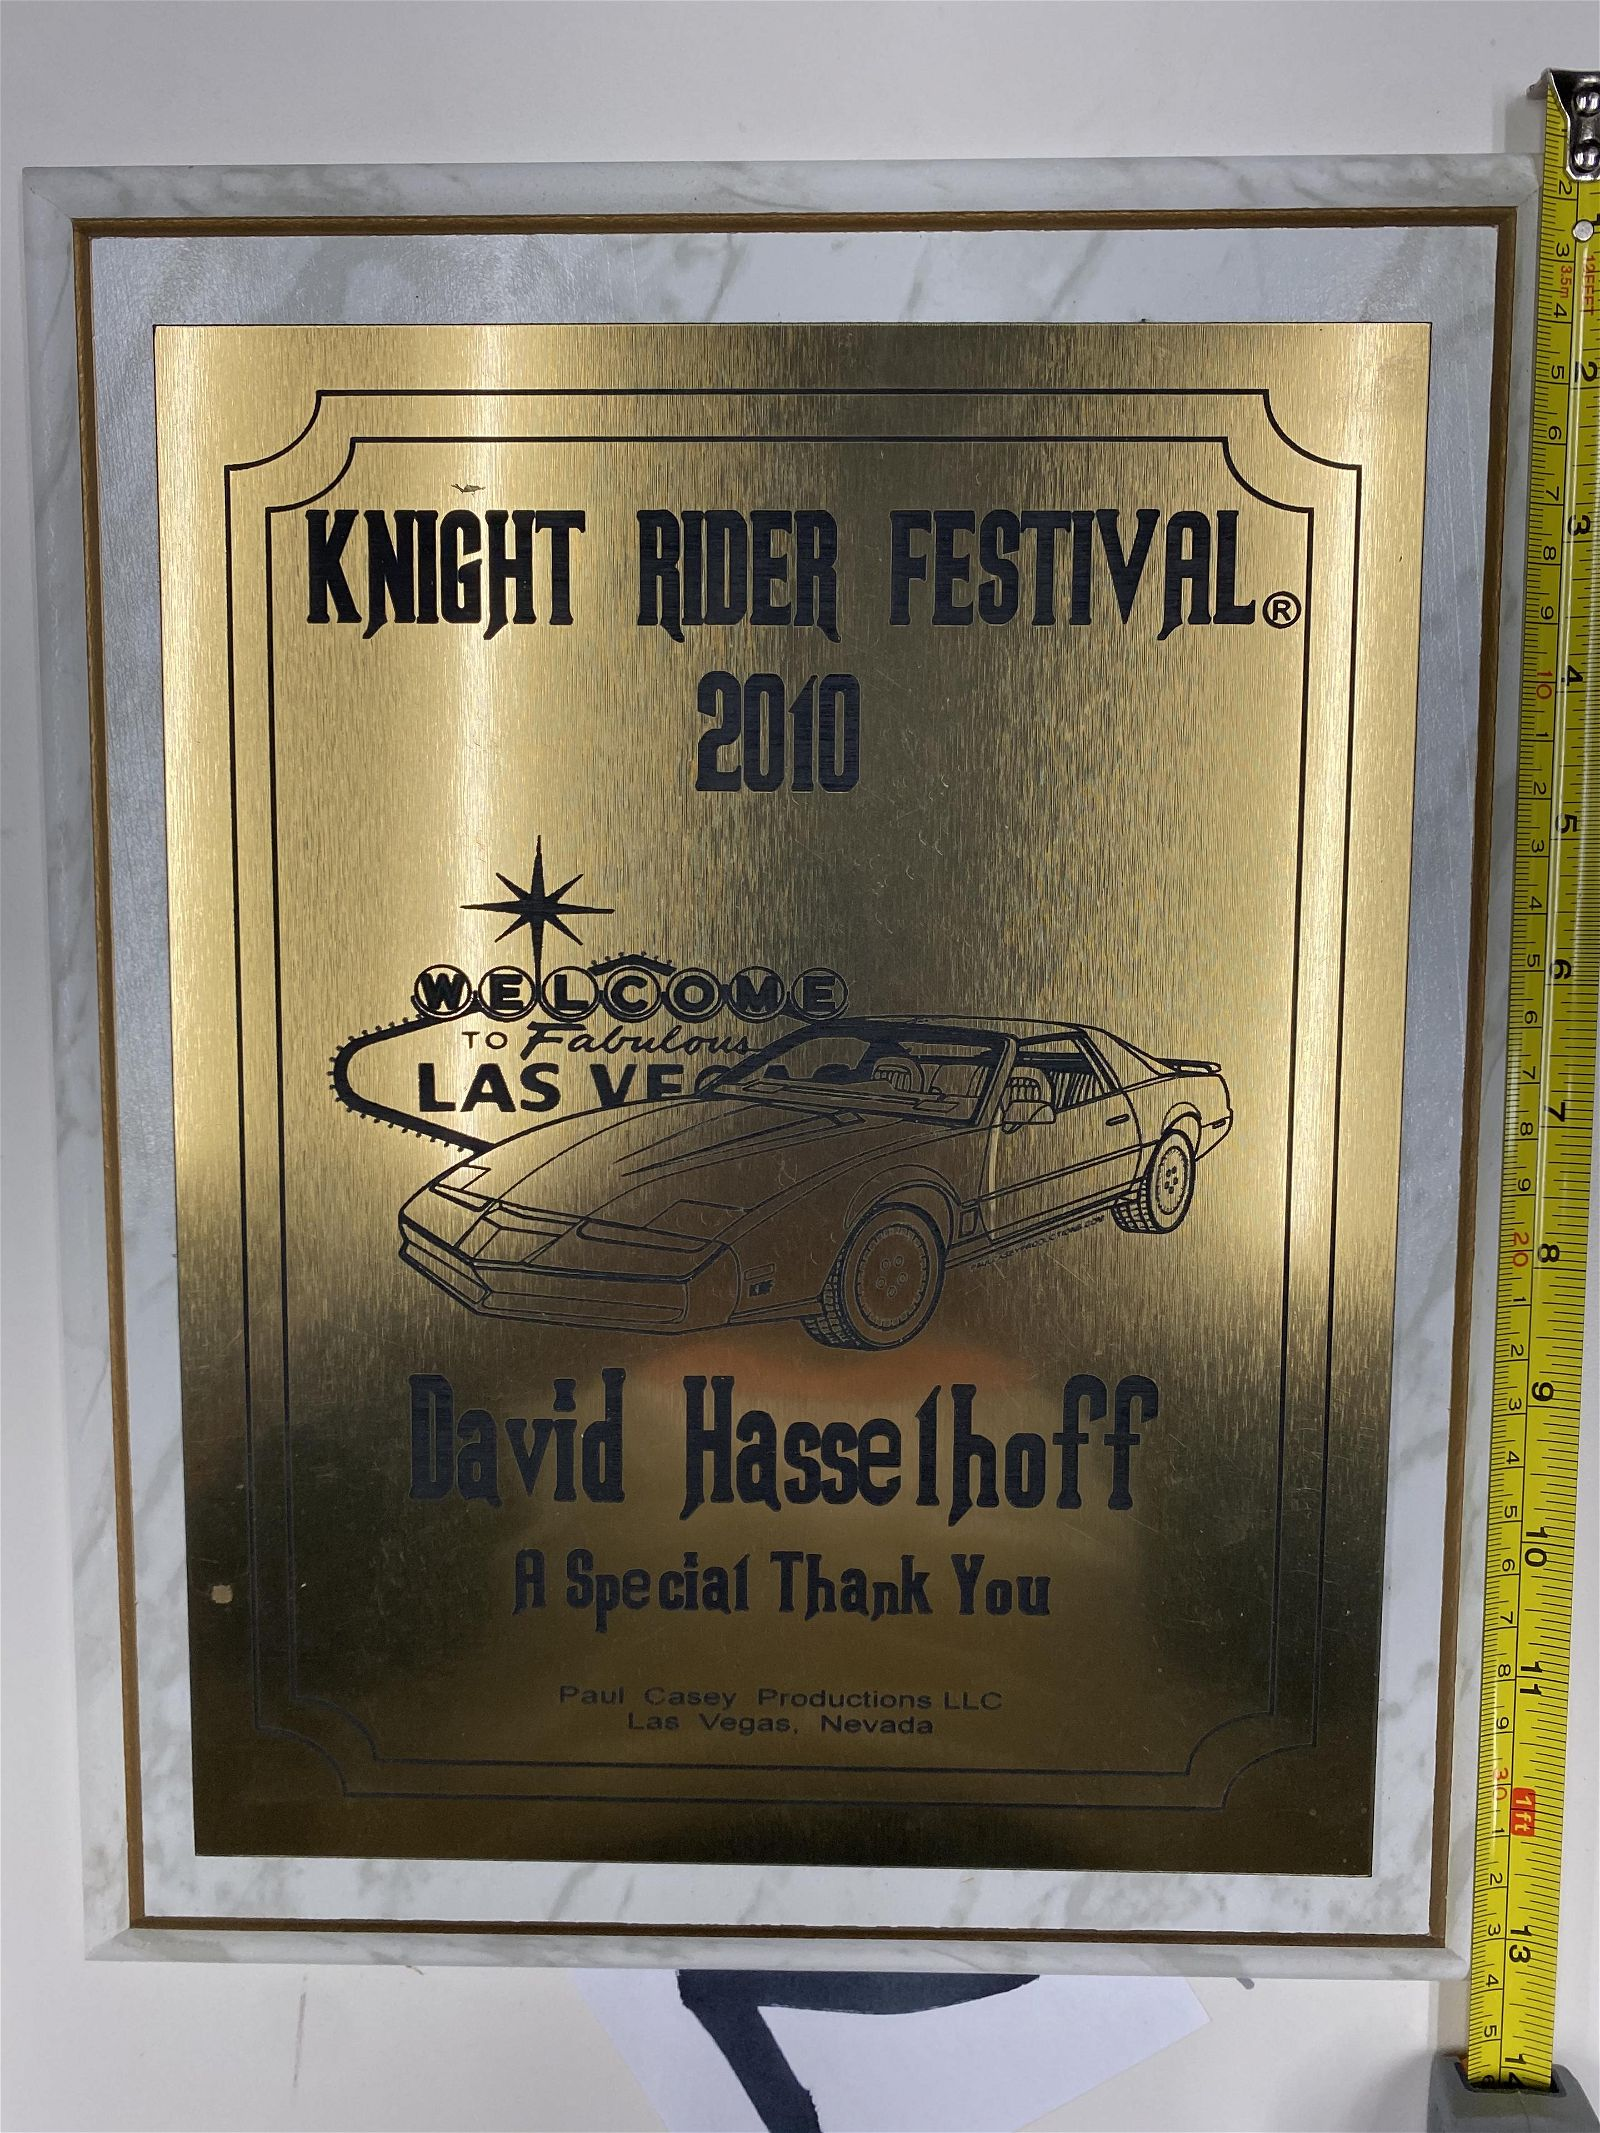 2010 KNIGHT RIDER FESTIVAL THANK YOU PLAQUE